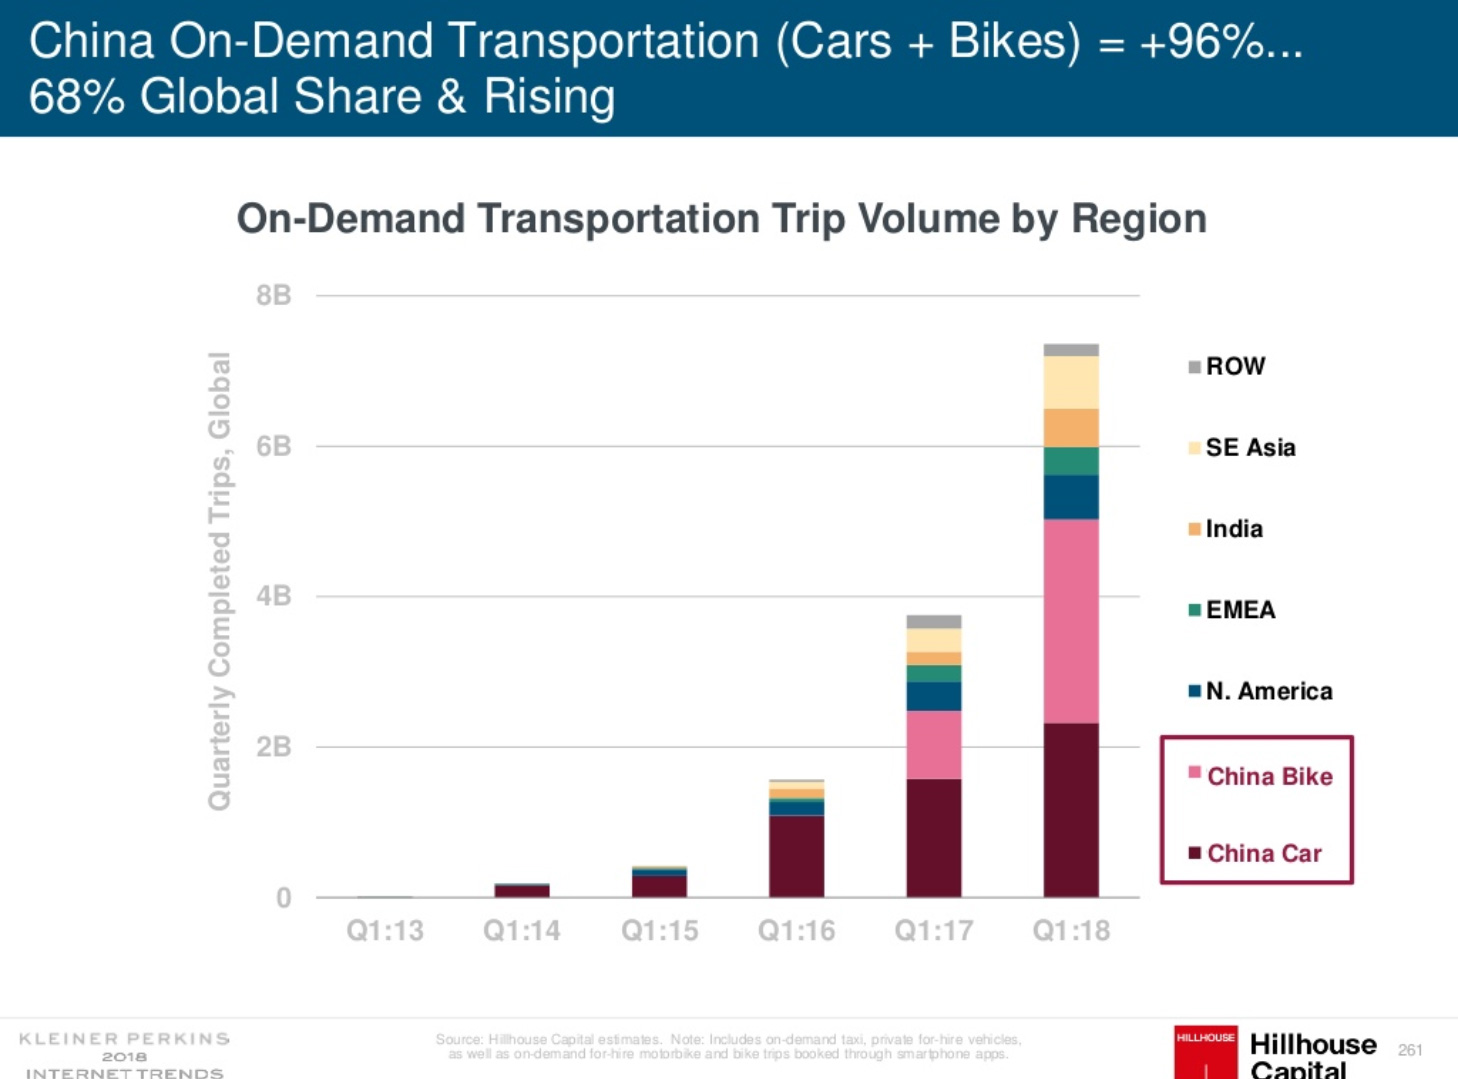 Transportation trip volume by region in China